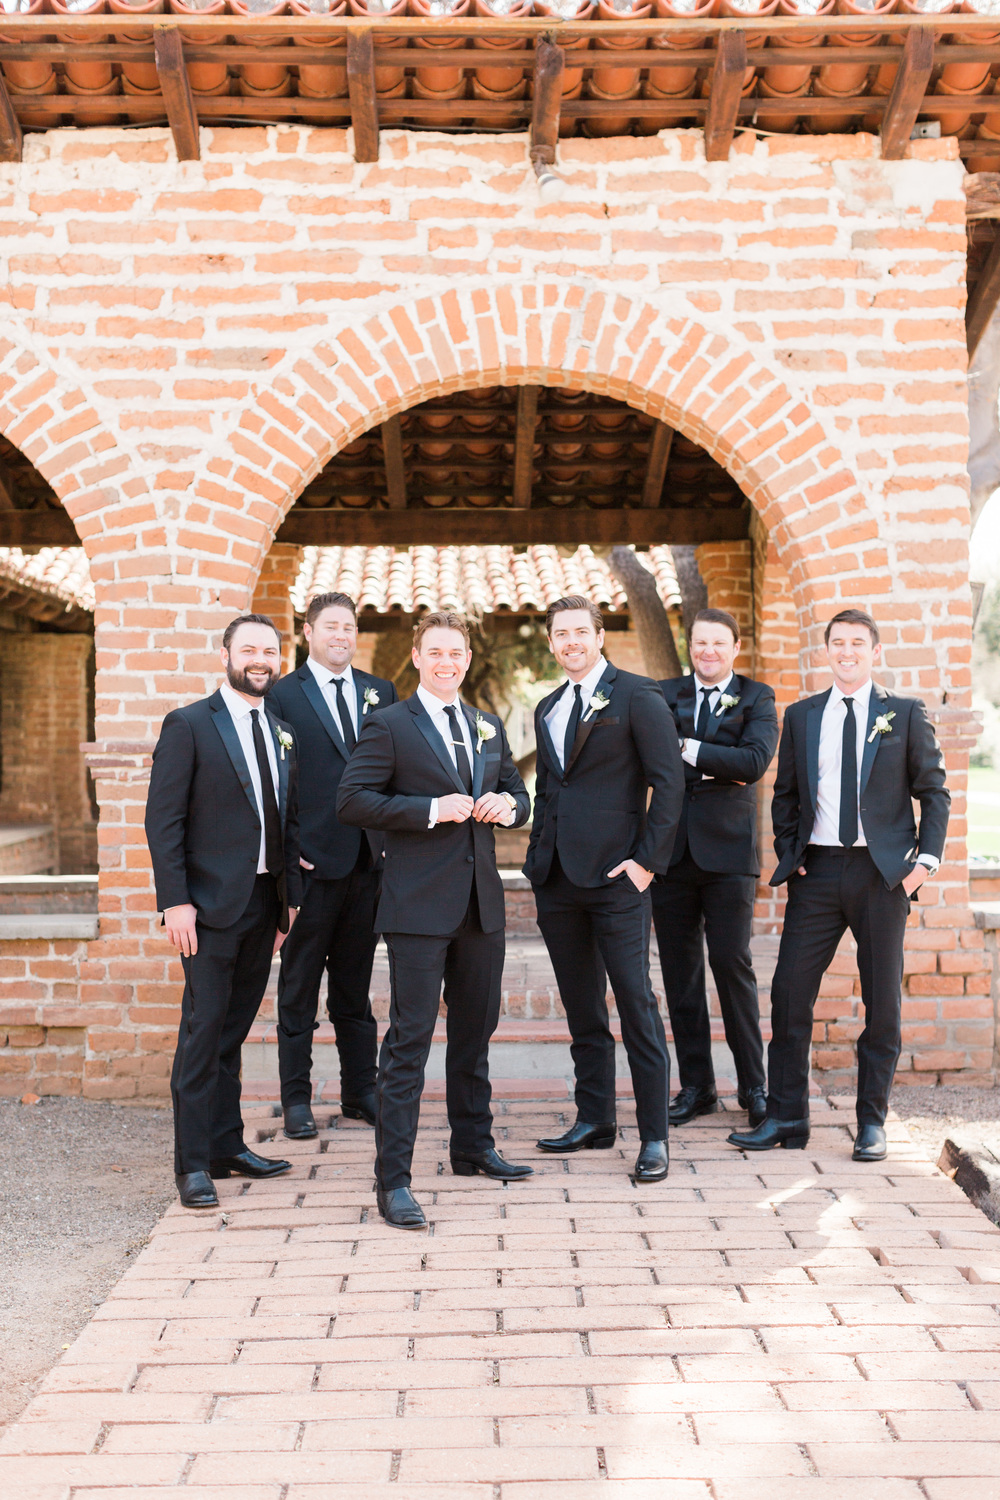 Groomsmen and groom in black tuxedos at Tubac Golf Resort